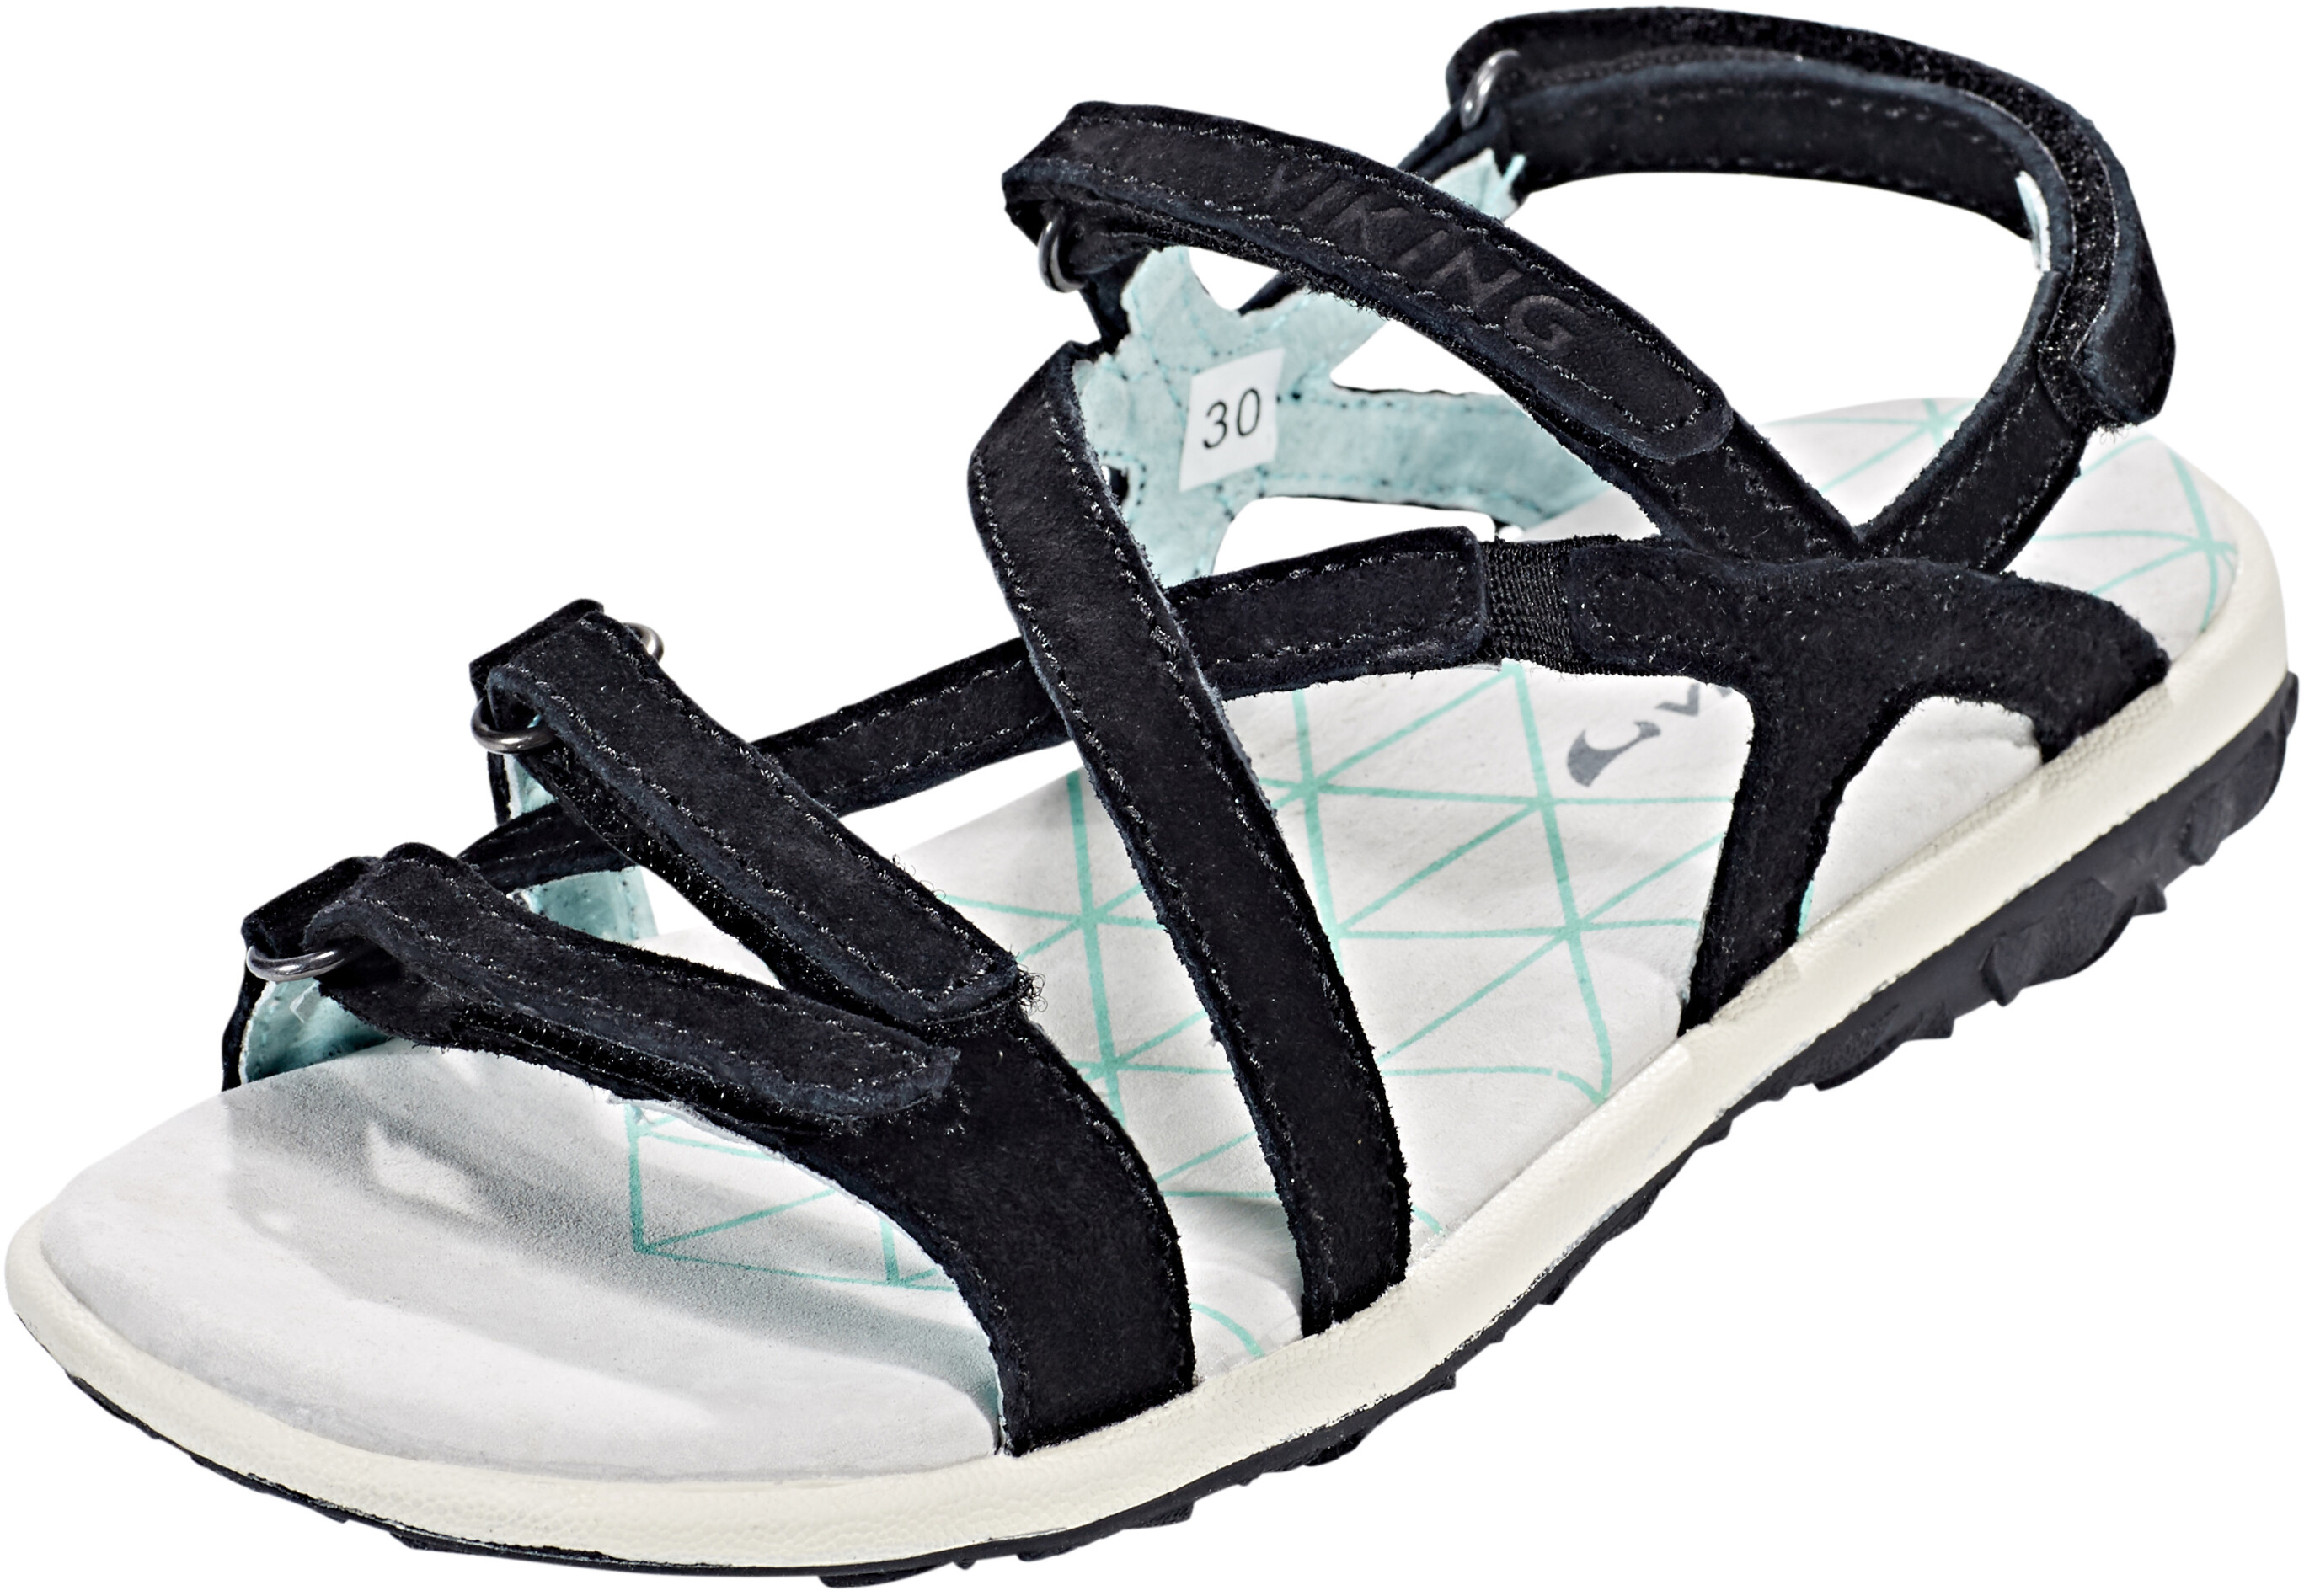 fca95e5915aa51 Viking Footwear Svala Sandals Children black at Addnature.co.uk